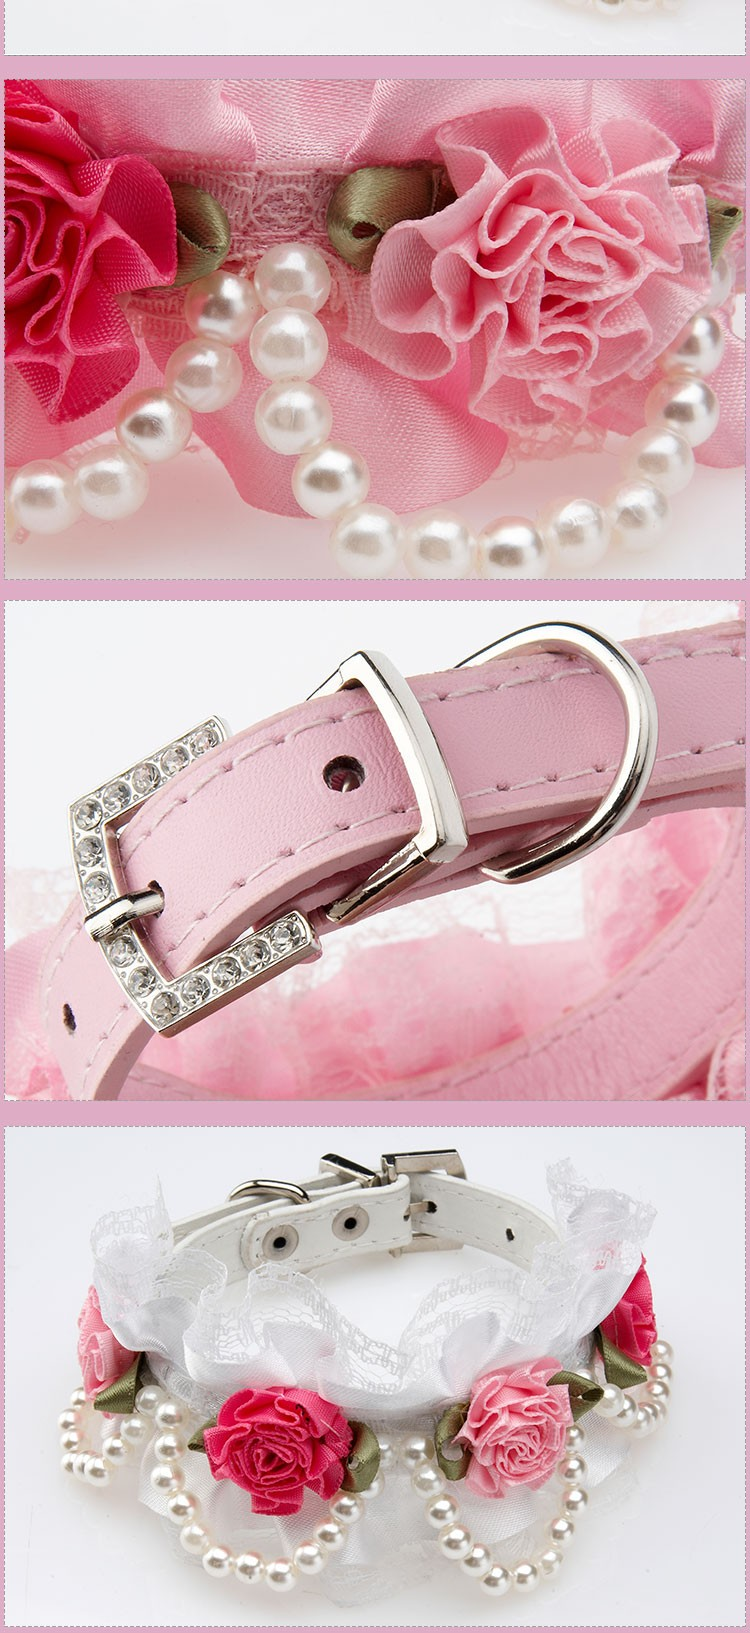 Fancy Pet Cat Collar Leather with Crystal Rhinestone Buckle Design Rose Lace Pearl